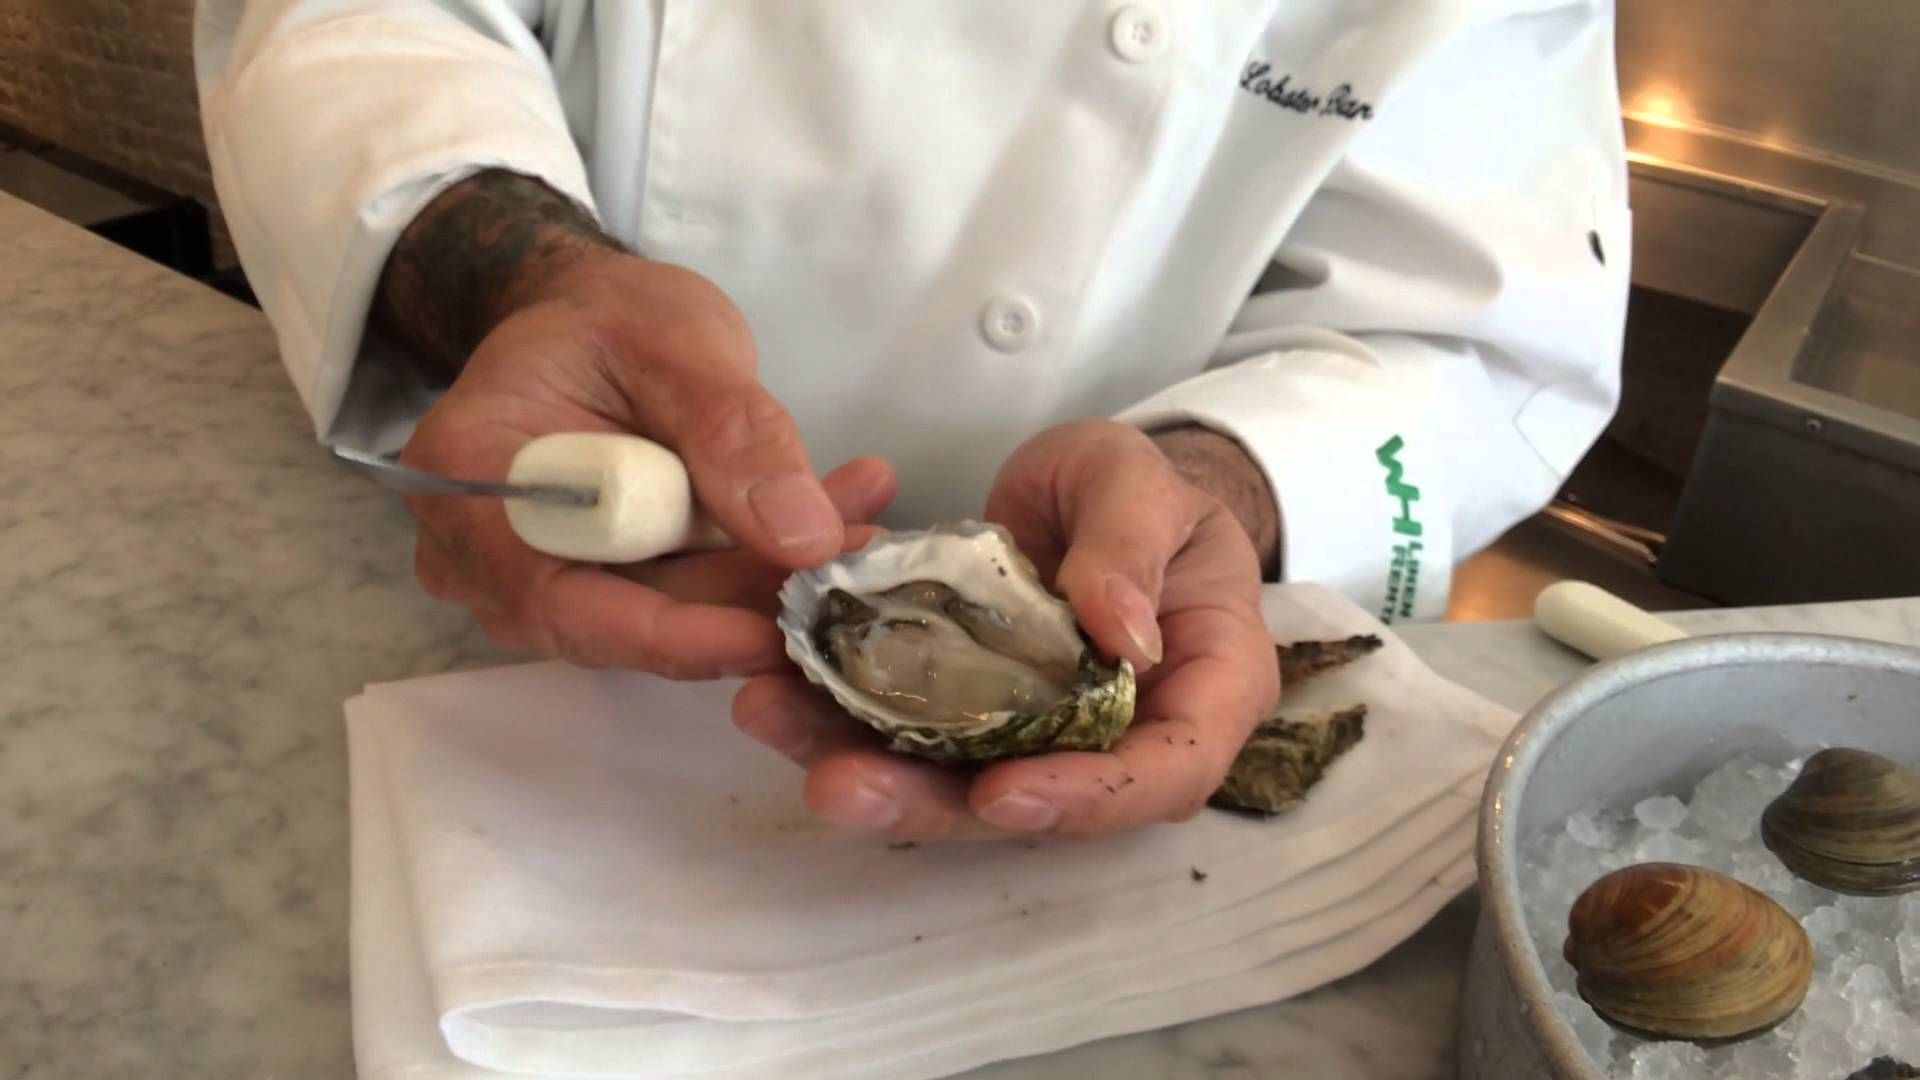 How to shuck oysters and clams with chef ed mcfarland